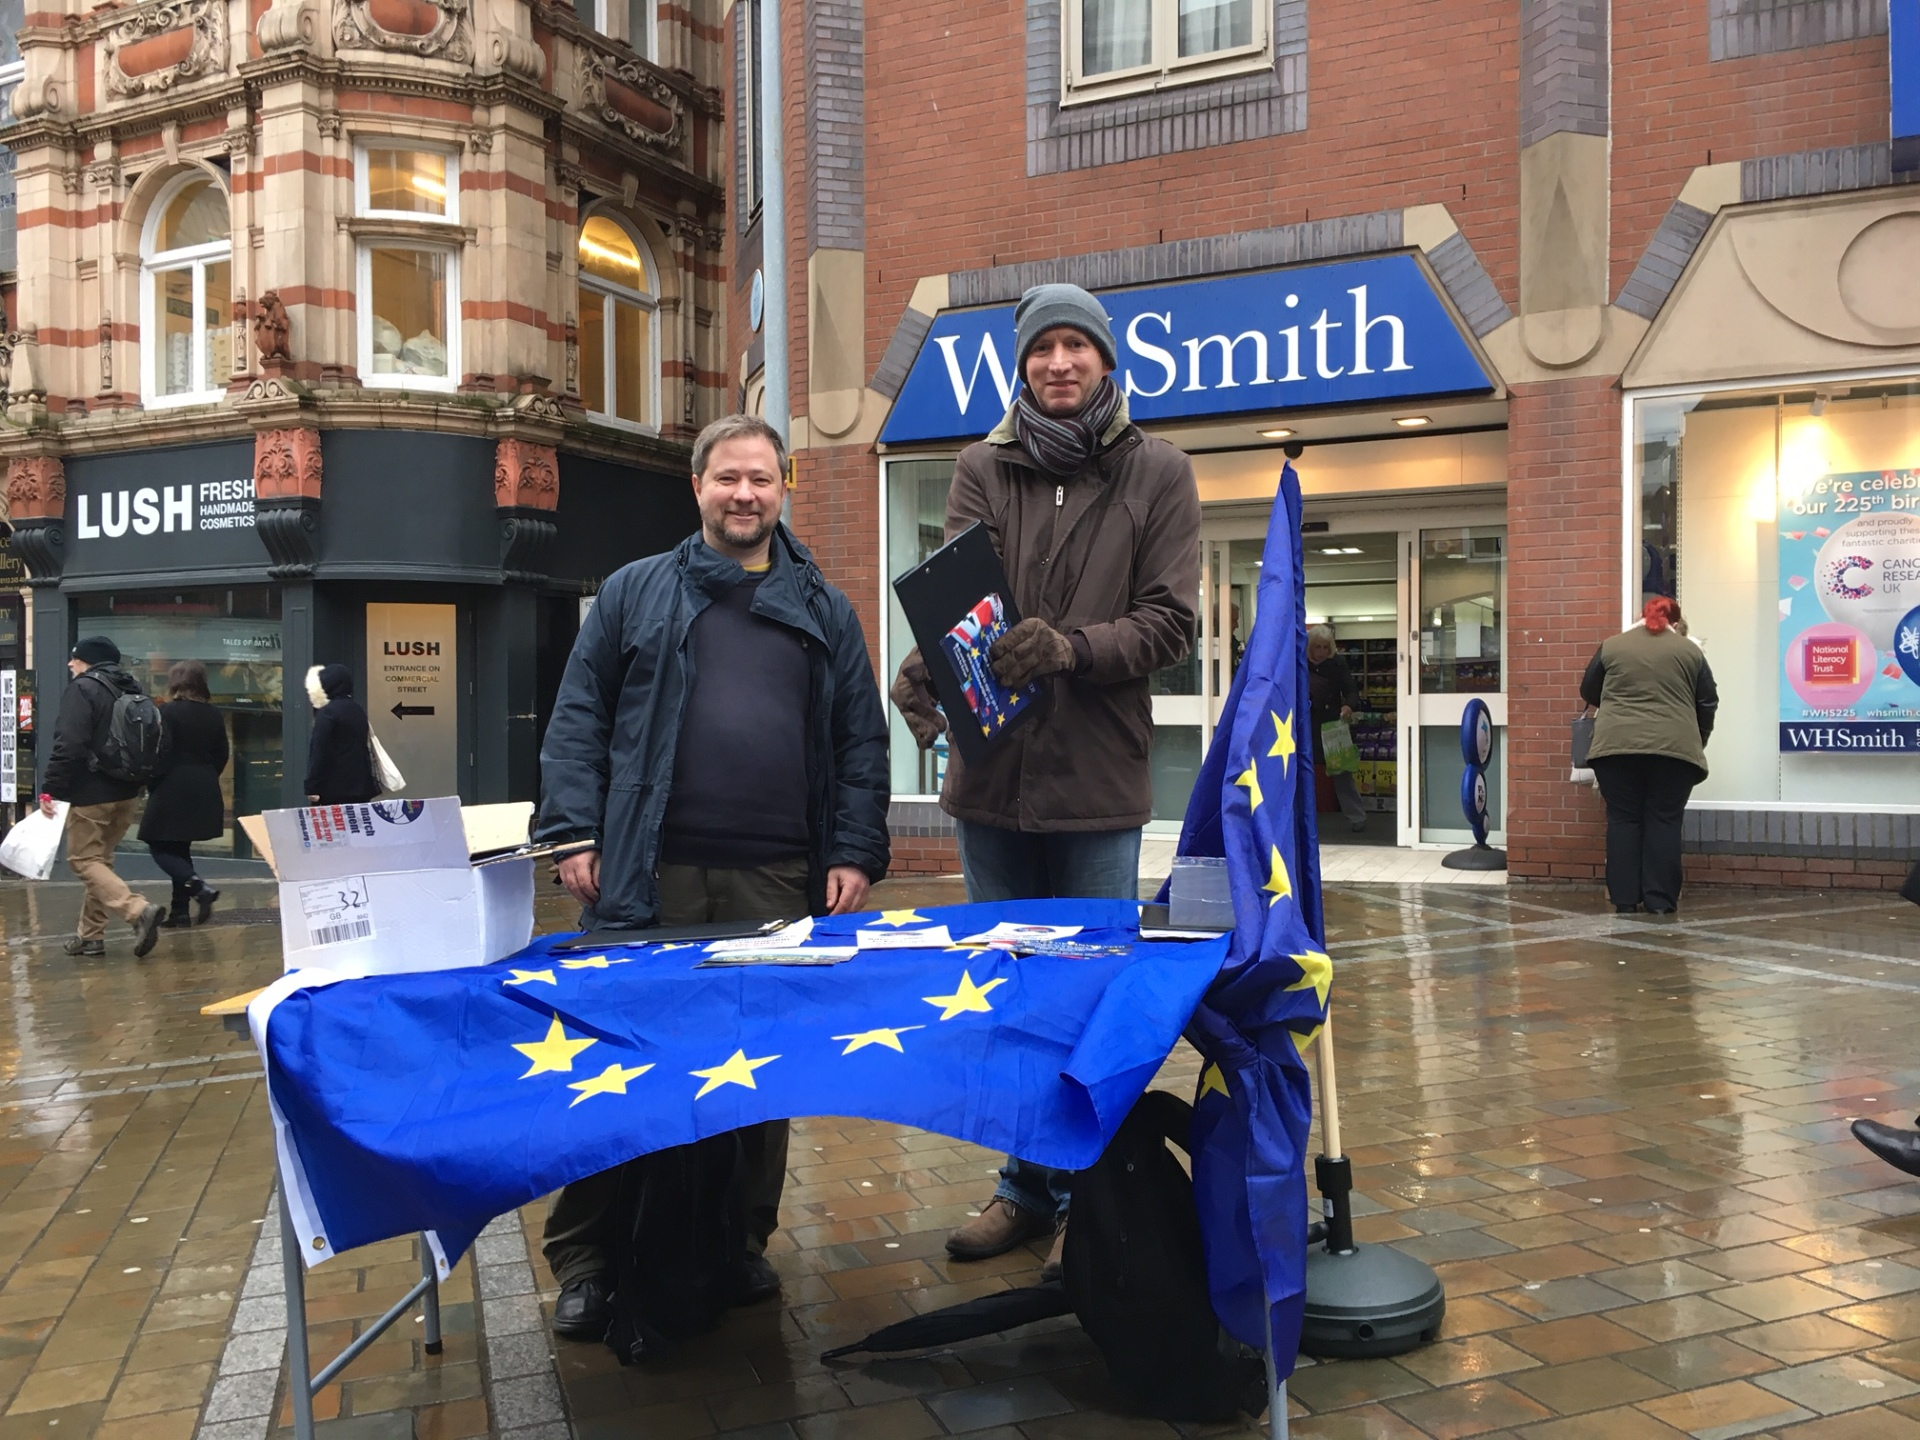 Campaigning against Brexit in Leeds